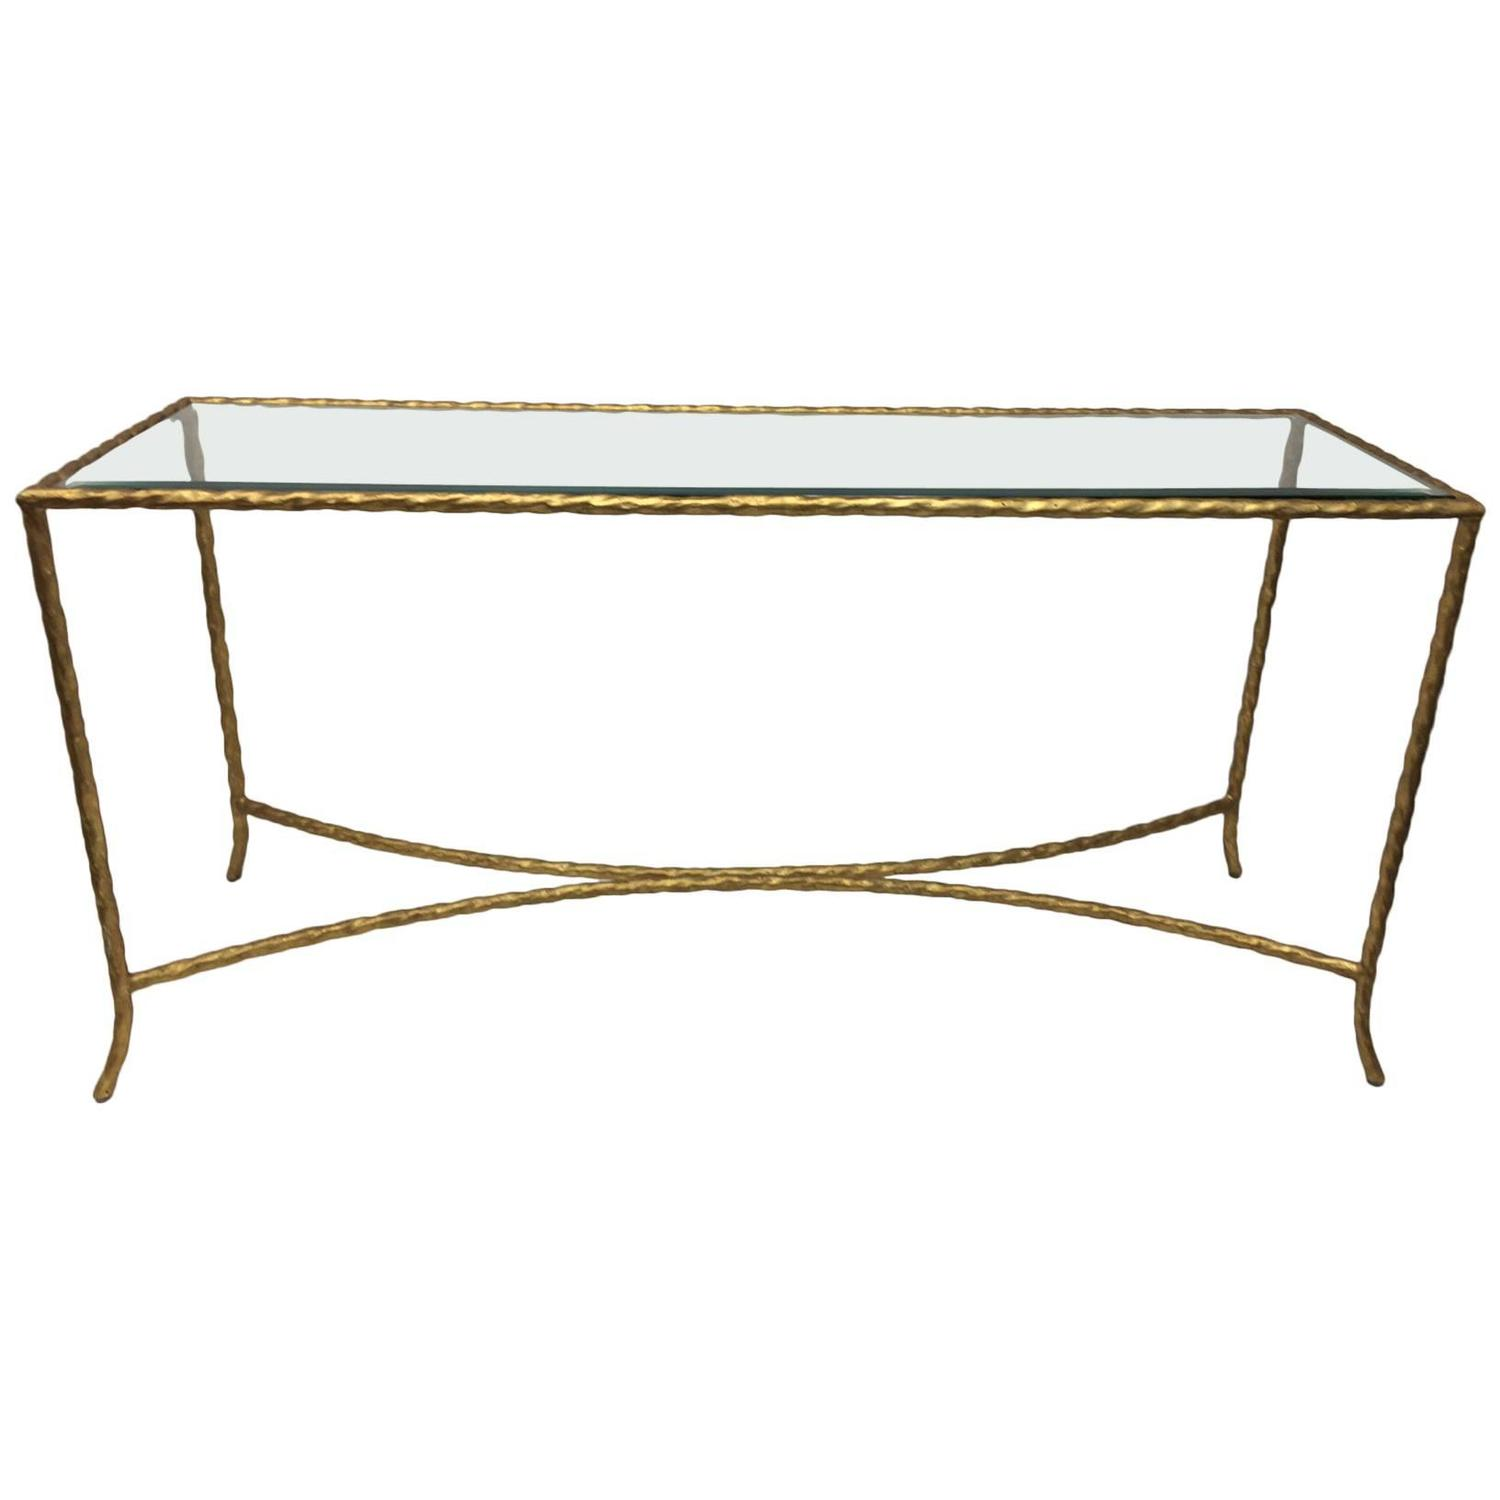 currey and co gold rope metal console table at 1stdibs. Black Bedroom Furniture Sets. Home Design Ideas